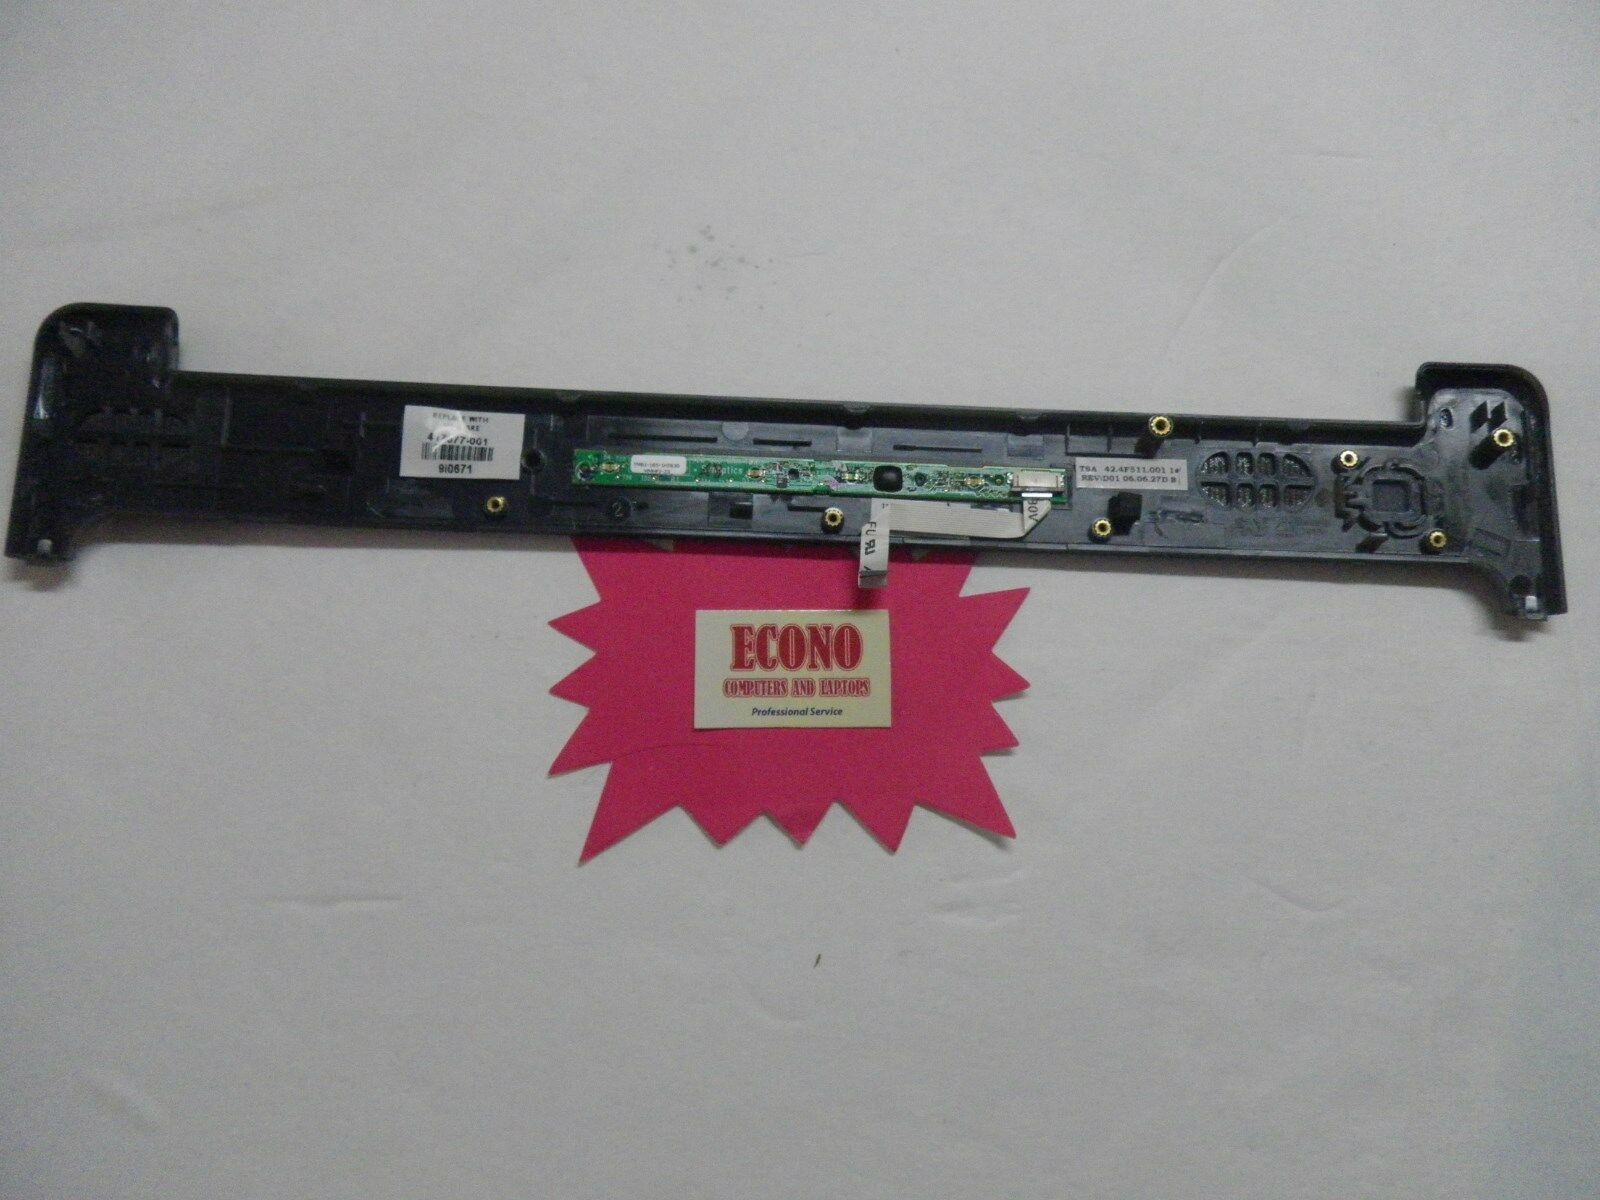 Computer Cables for HP for Compaq Presario R4200 R4000 R3400 R3300 R3200 R3100 R3000 R3001AP nx9110 nx9105 350842-001 DC025060910 LCD Cable Cable Length: Standard